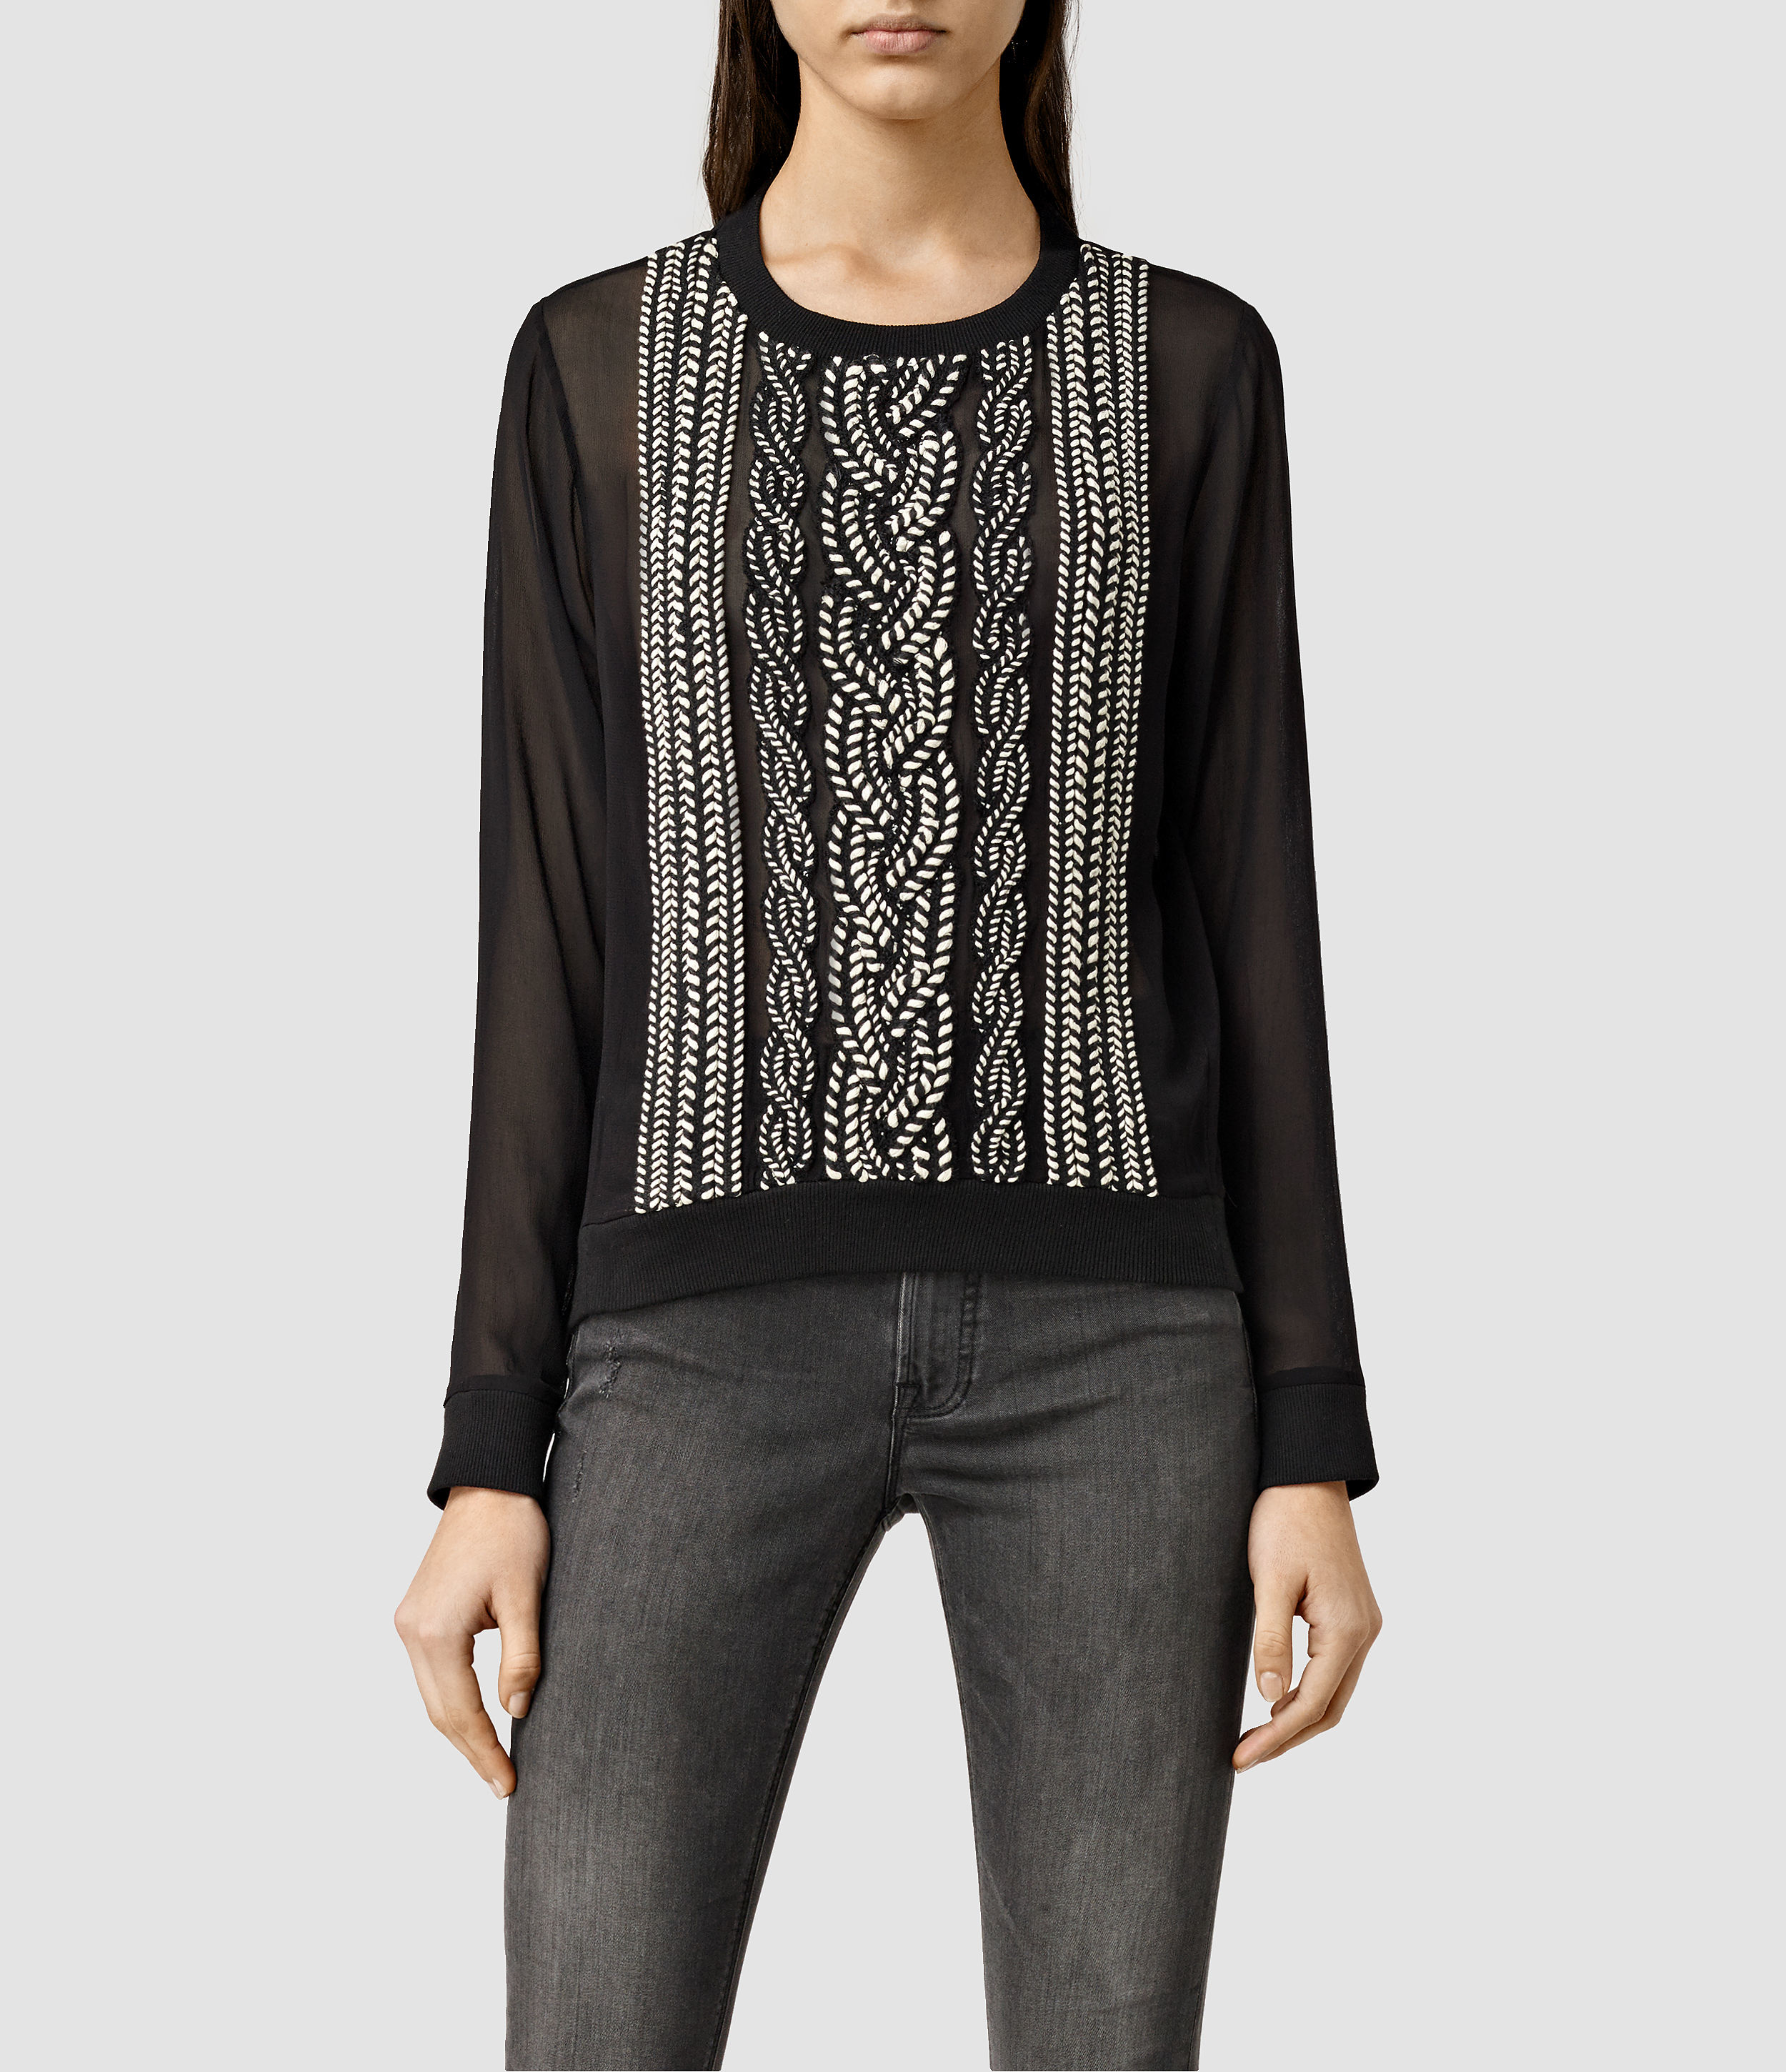 Allsaints Plethen Embroidered Top Usa Usa In Black  Lyst